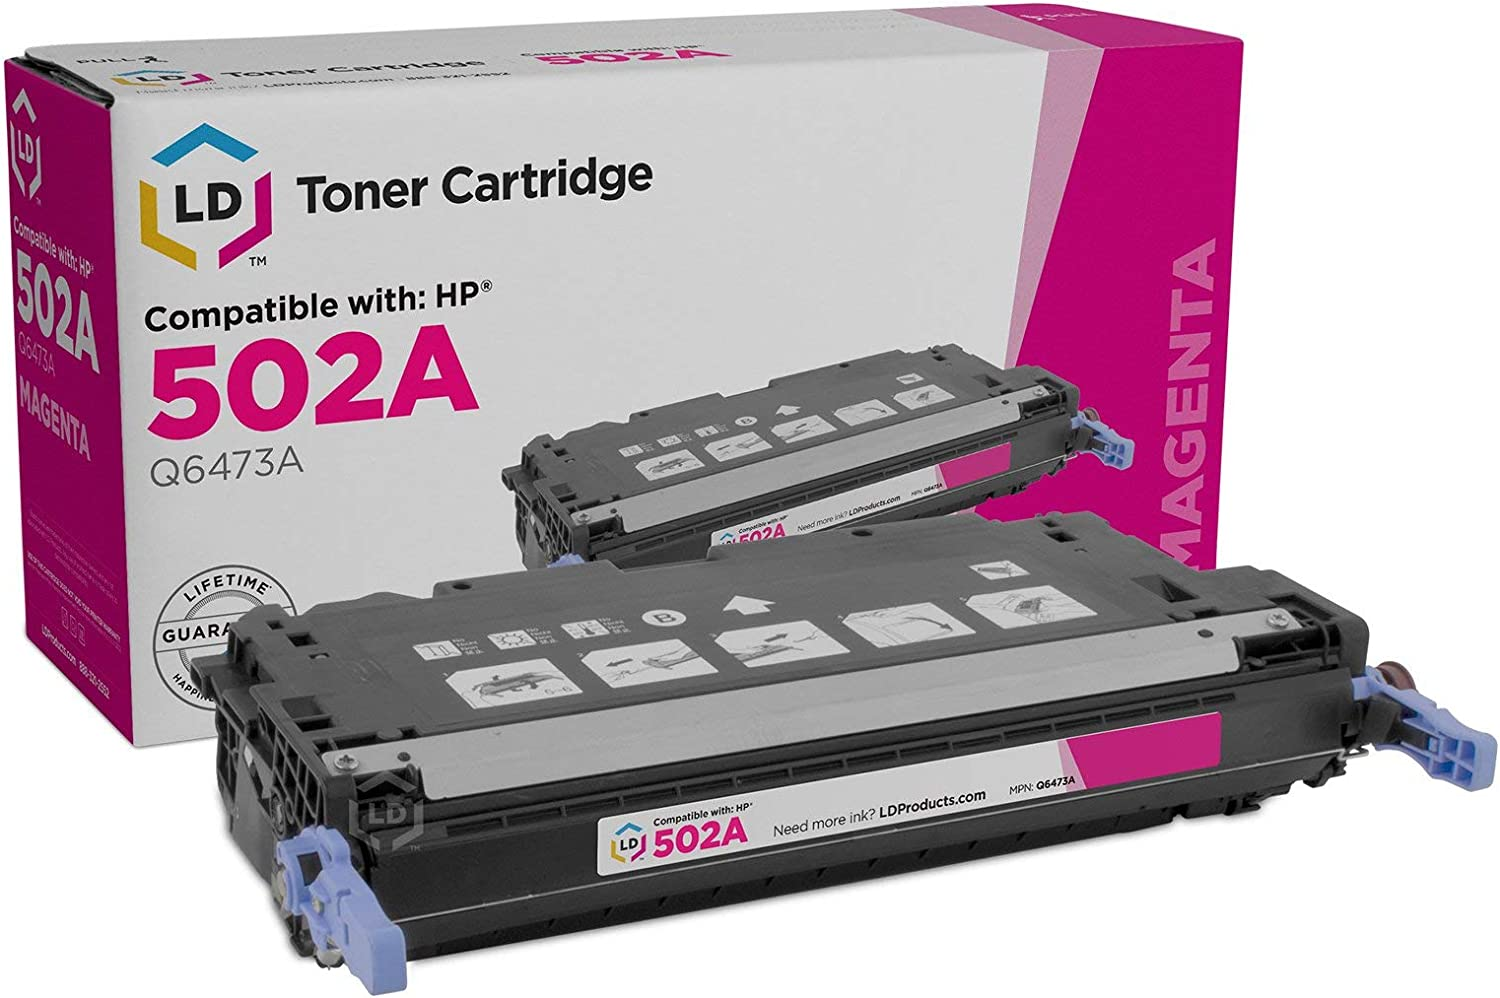 LD Remanufactured Toner Cartridge Replacement for HP 502A Q6473A (Magenta)